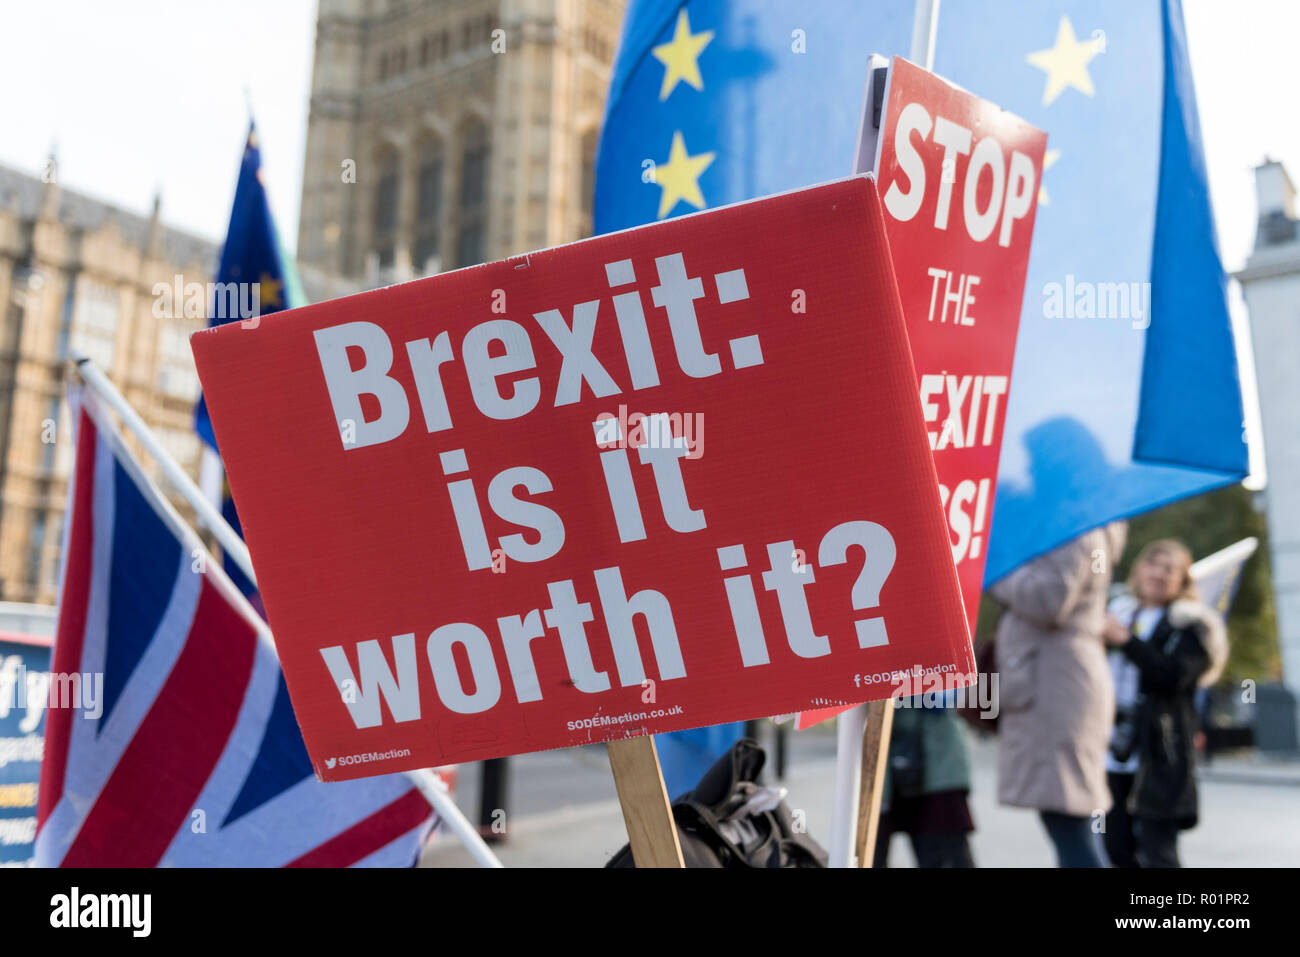 London, UK.  31 October 2018.  Signs and flags of Stand of Defiance European Movement (SODEM), outside Parliament as the group continues their anti-Brexit campaign which began in September 2017. Credit: Stephen Chung / Alamy Live News Stock Photo